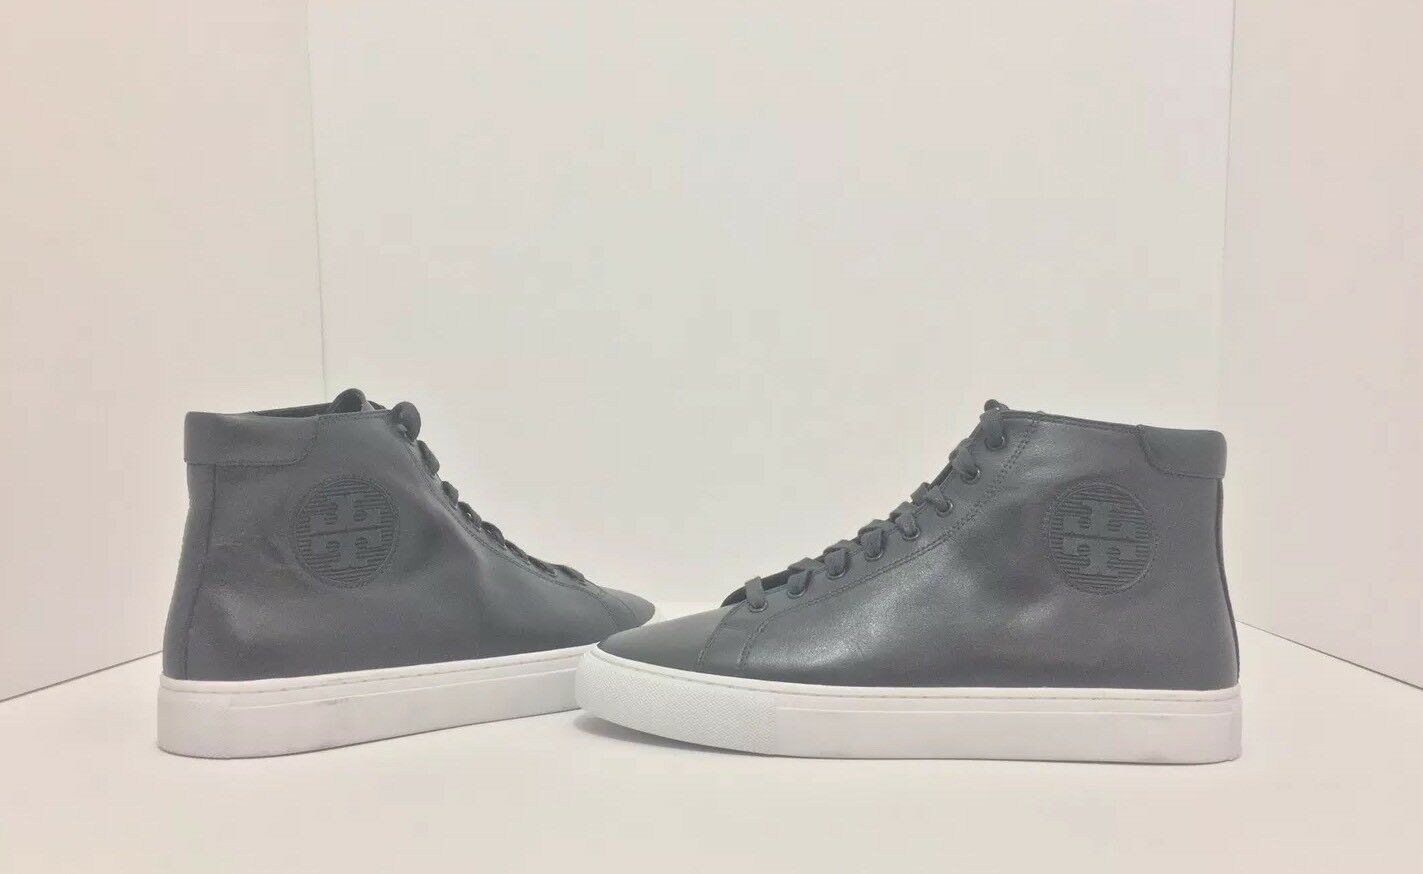 Tory Burch Nola High Top Navy Leder Flats Sneakers Größe 8.5 M